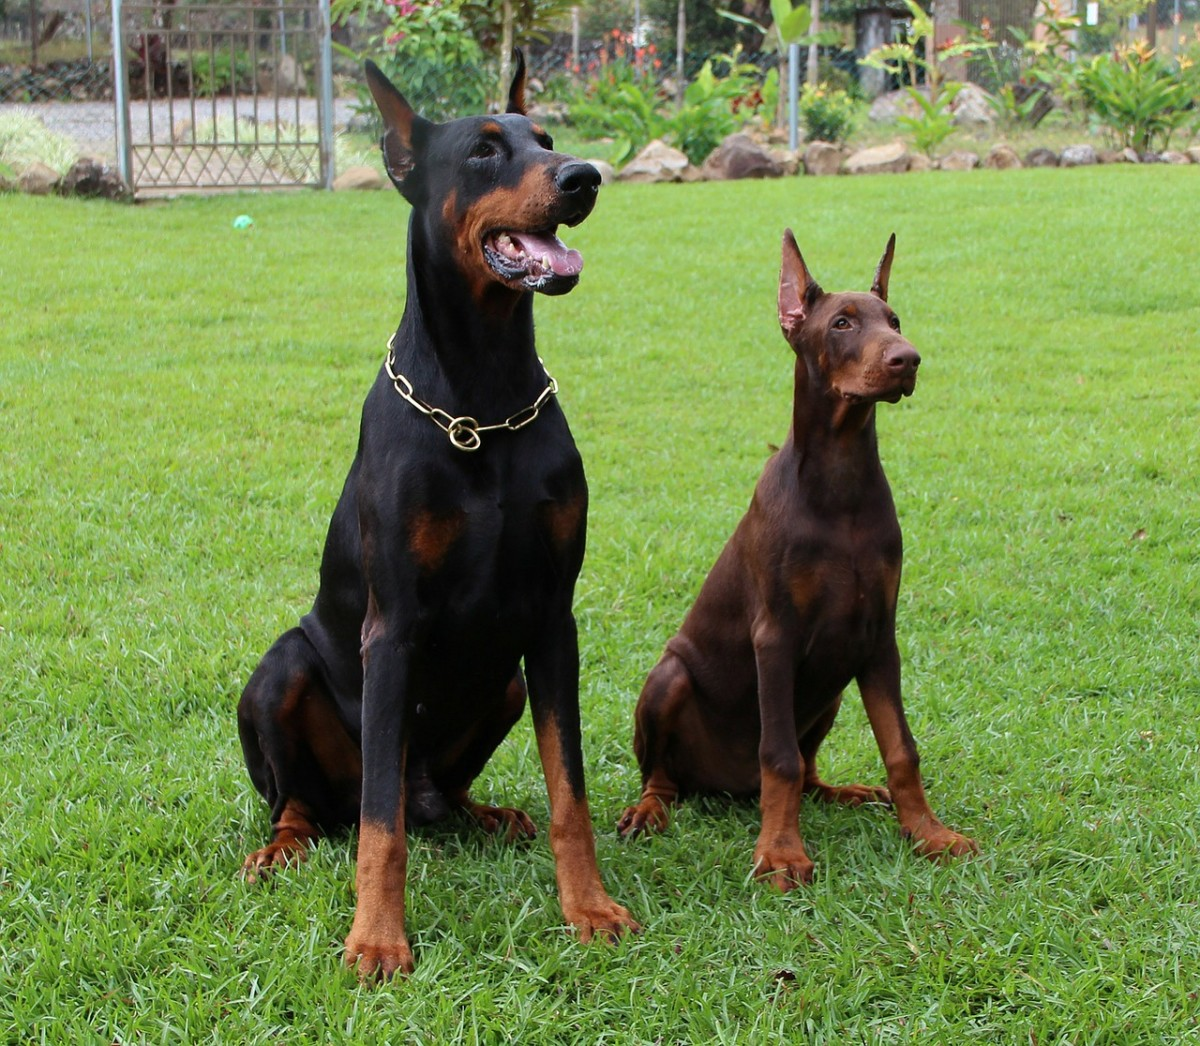 Dilated cardiomyopathy is more common in the Doberman Pinscher